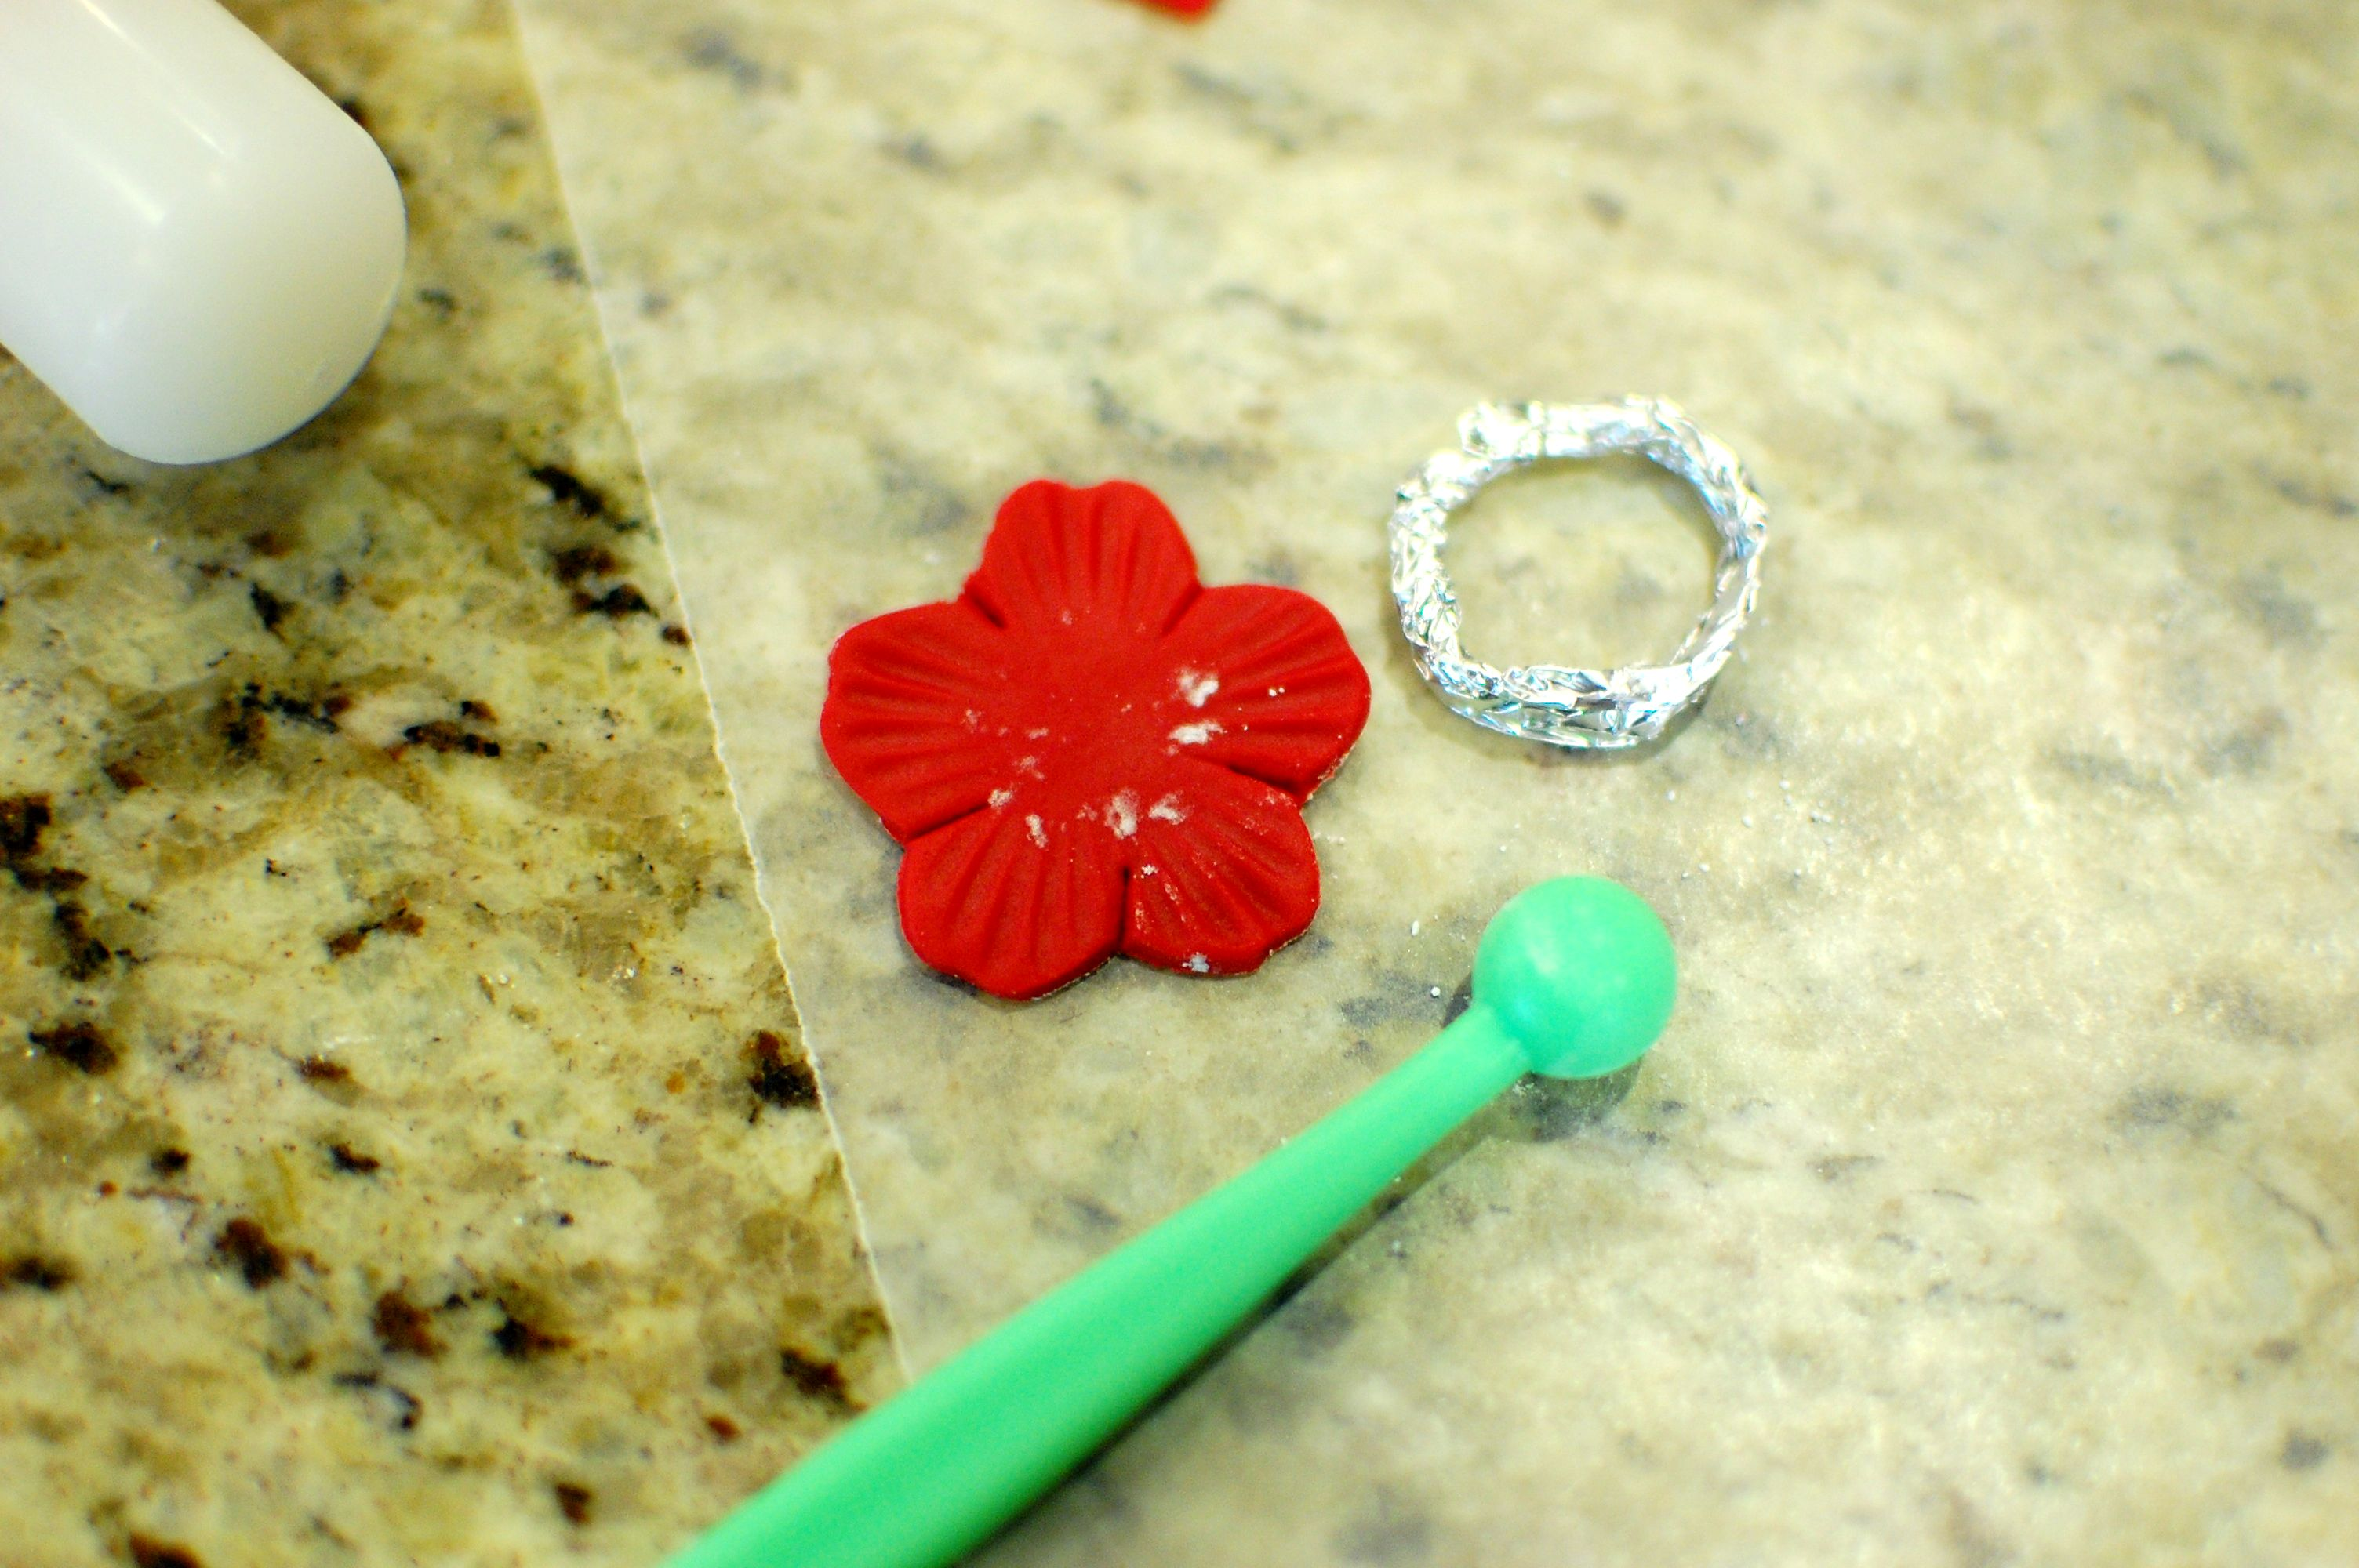 How To Make Fondant Roses Flowers And Royal Icing To Decorate